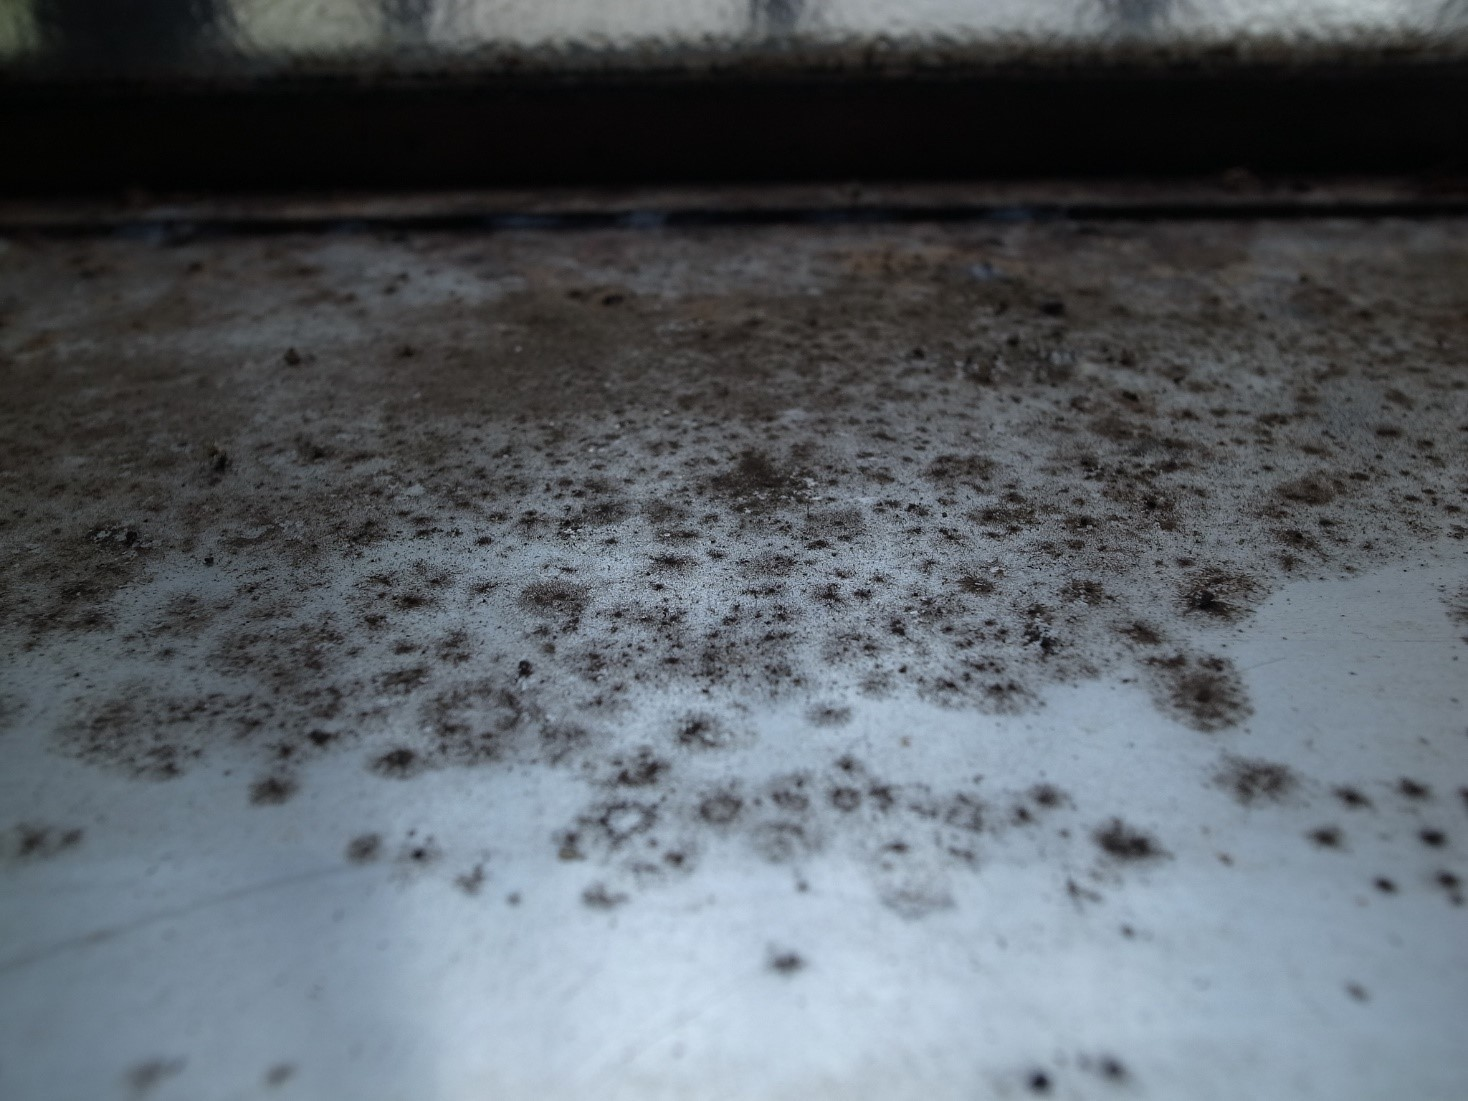 image of black mould growing on a surface at home. Could potentially be aspergillus